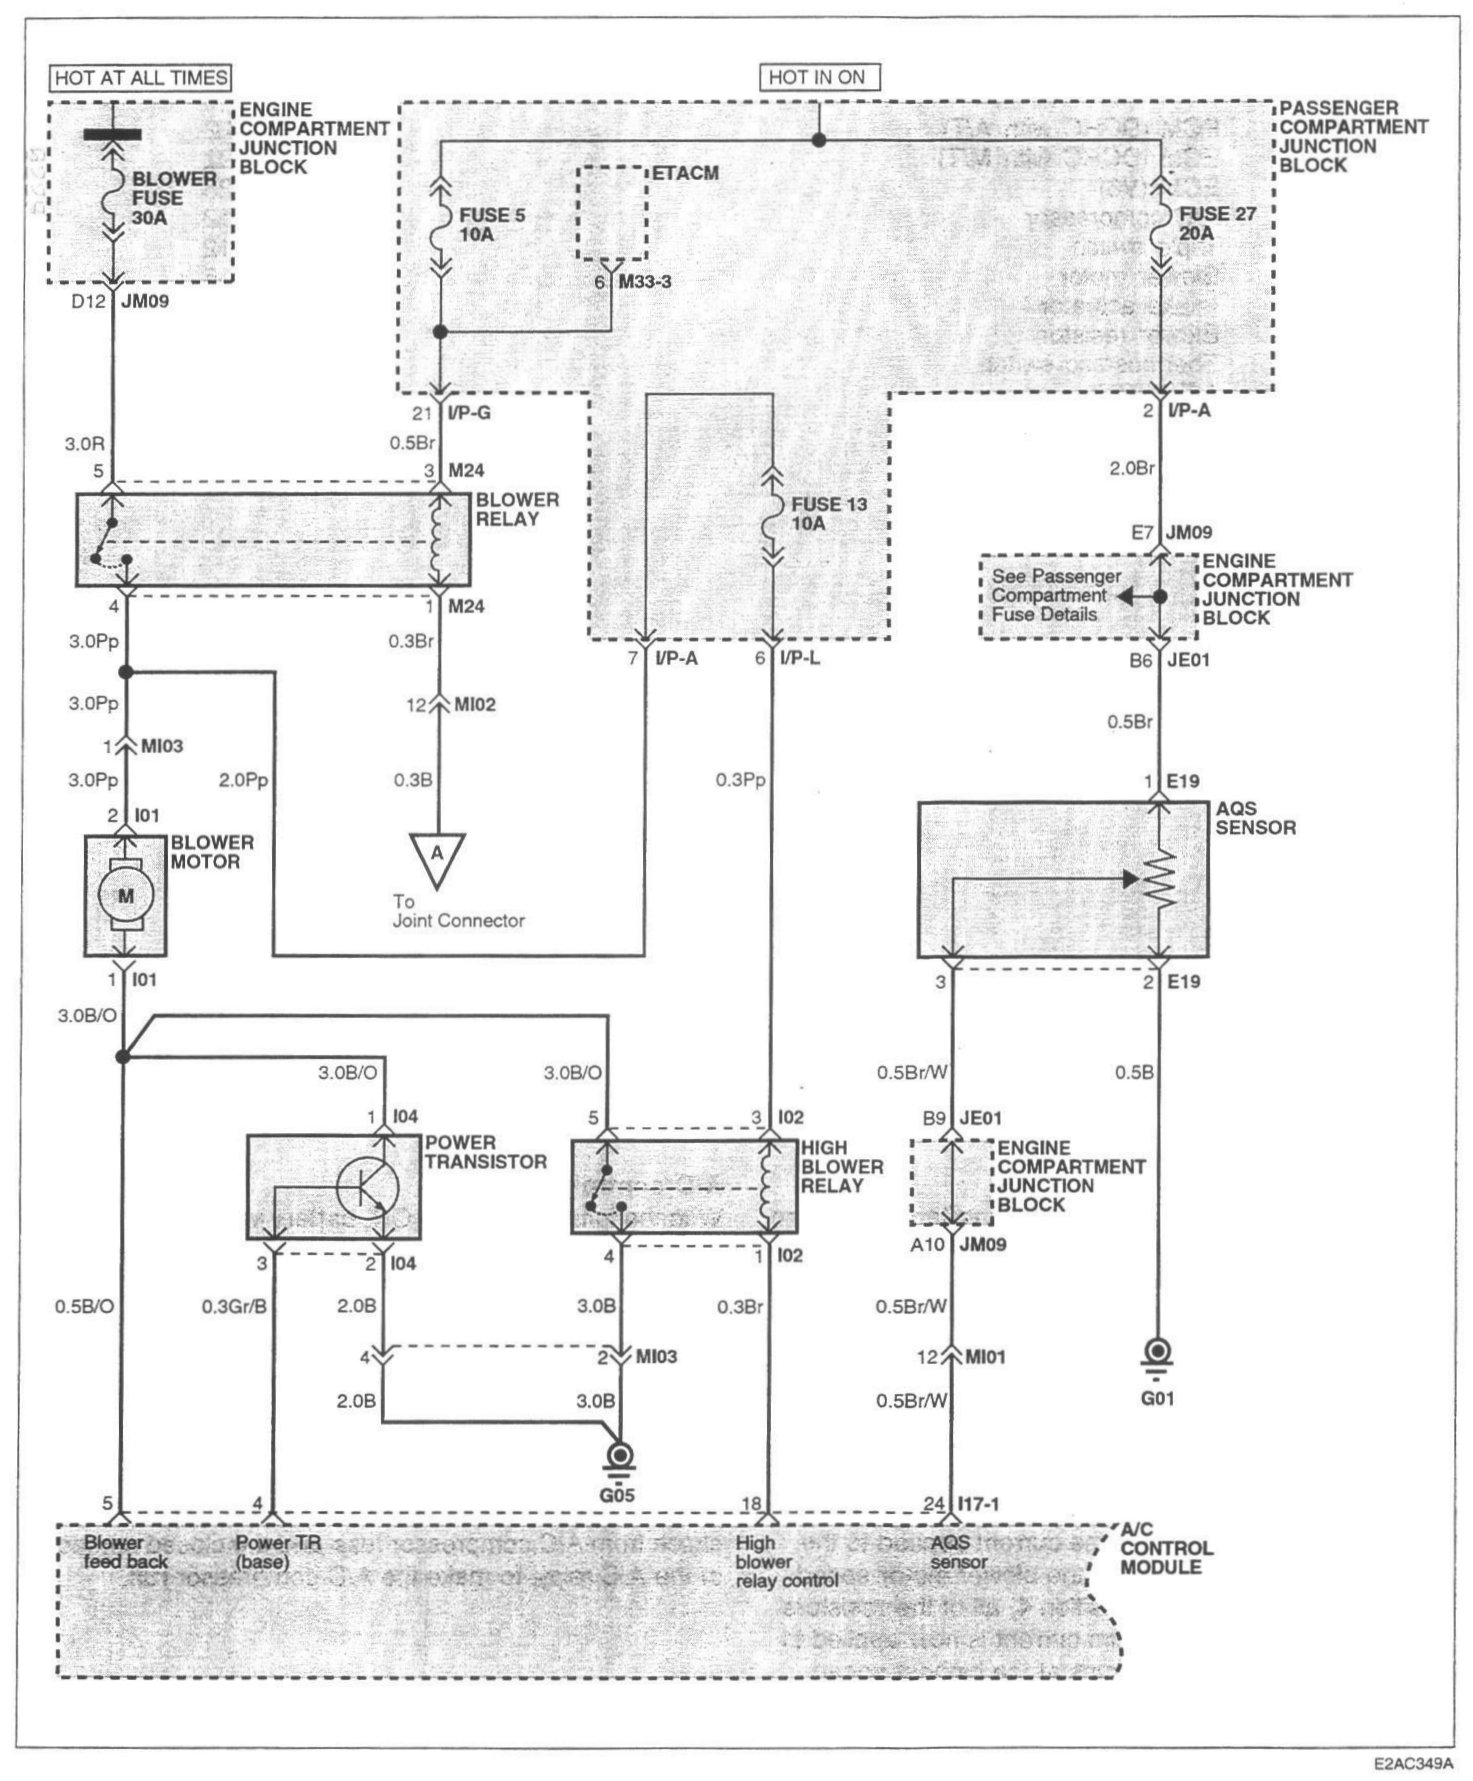 2002 Hyundai Sonata Wiring Diagram Reveolution Of 2010 Free Picture For Get Image Cam Sensor Diagrams 2001